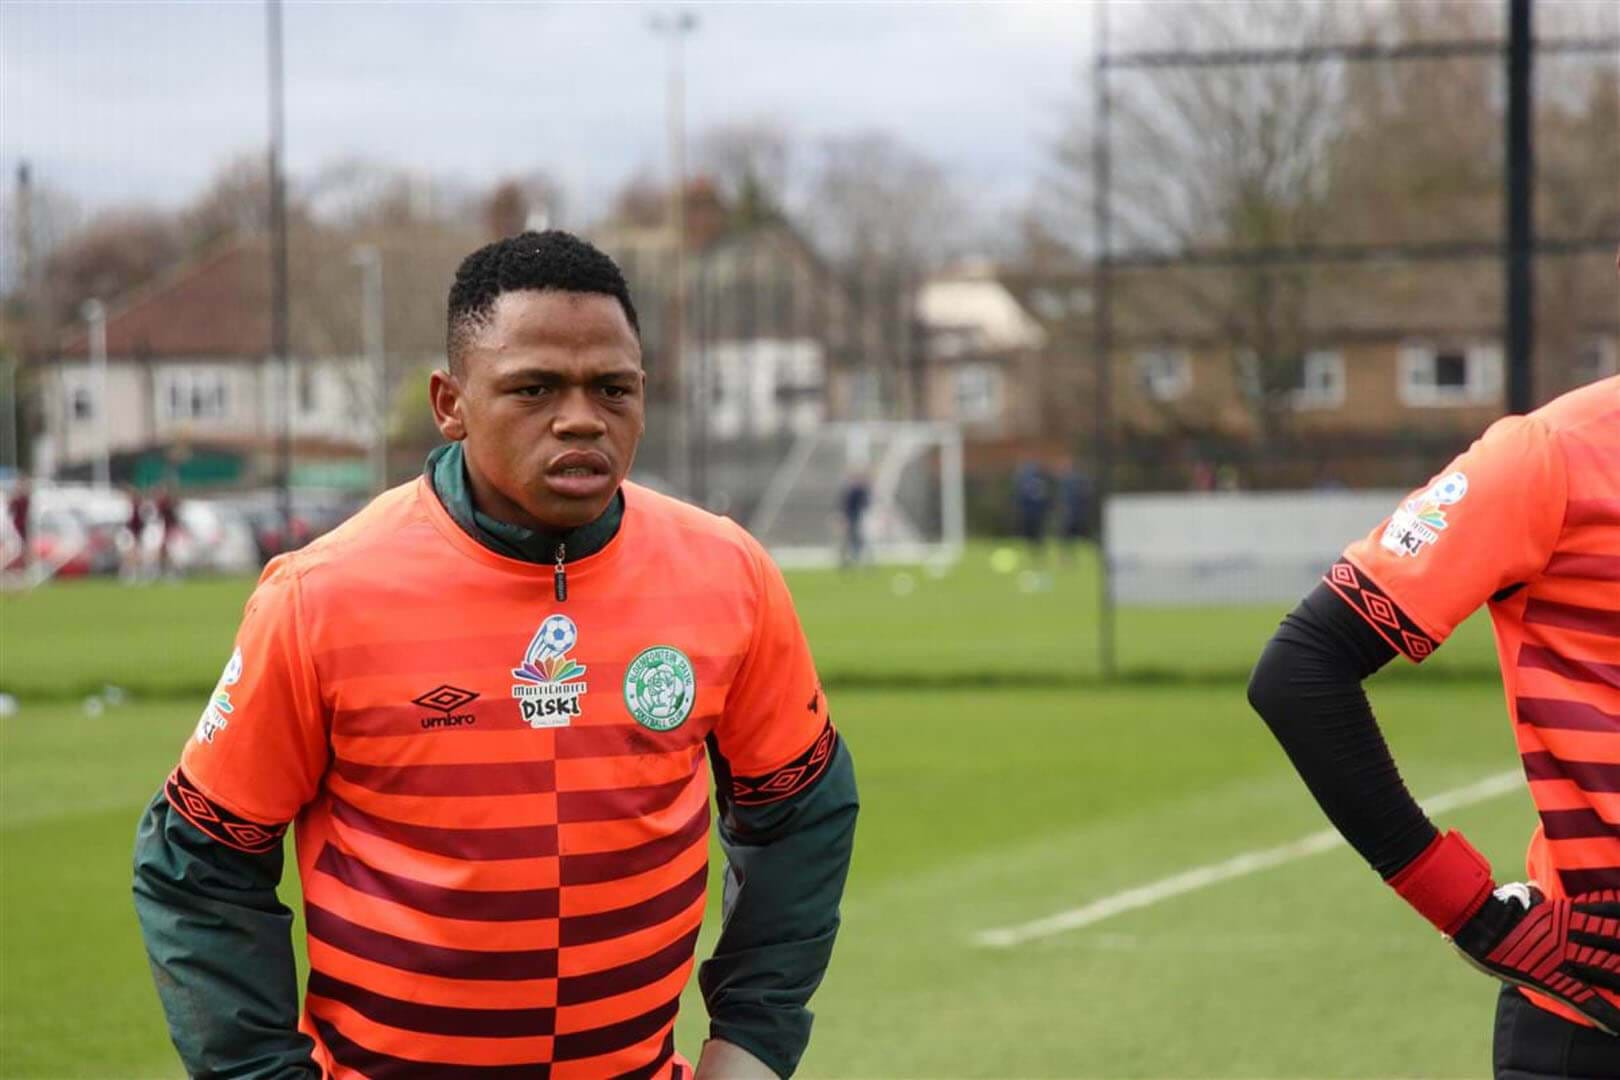 Bloemfontein Celtic's goalkeeper loving UK trip- image